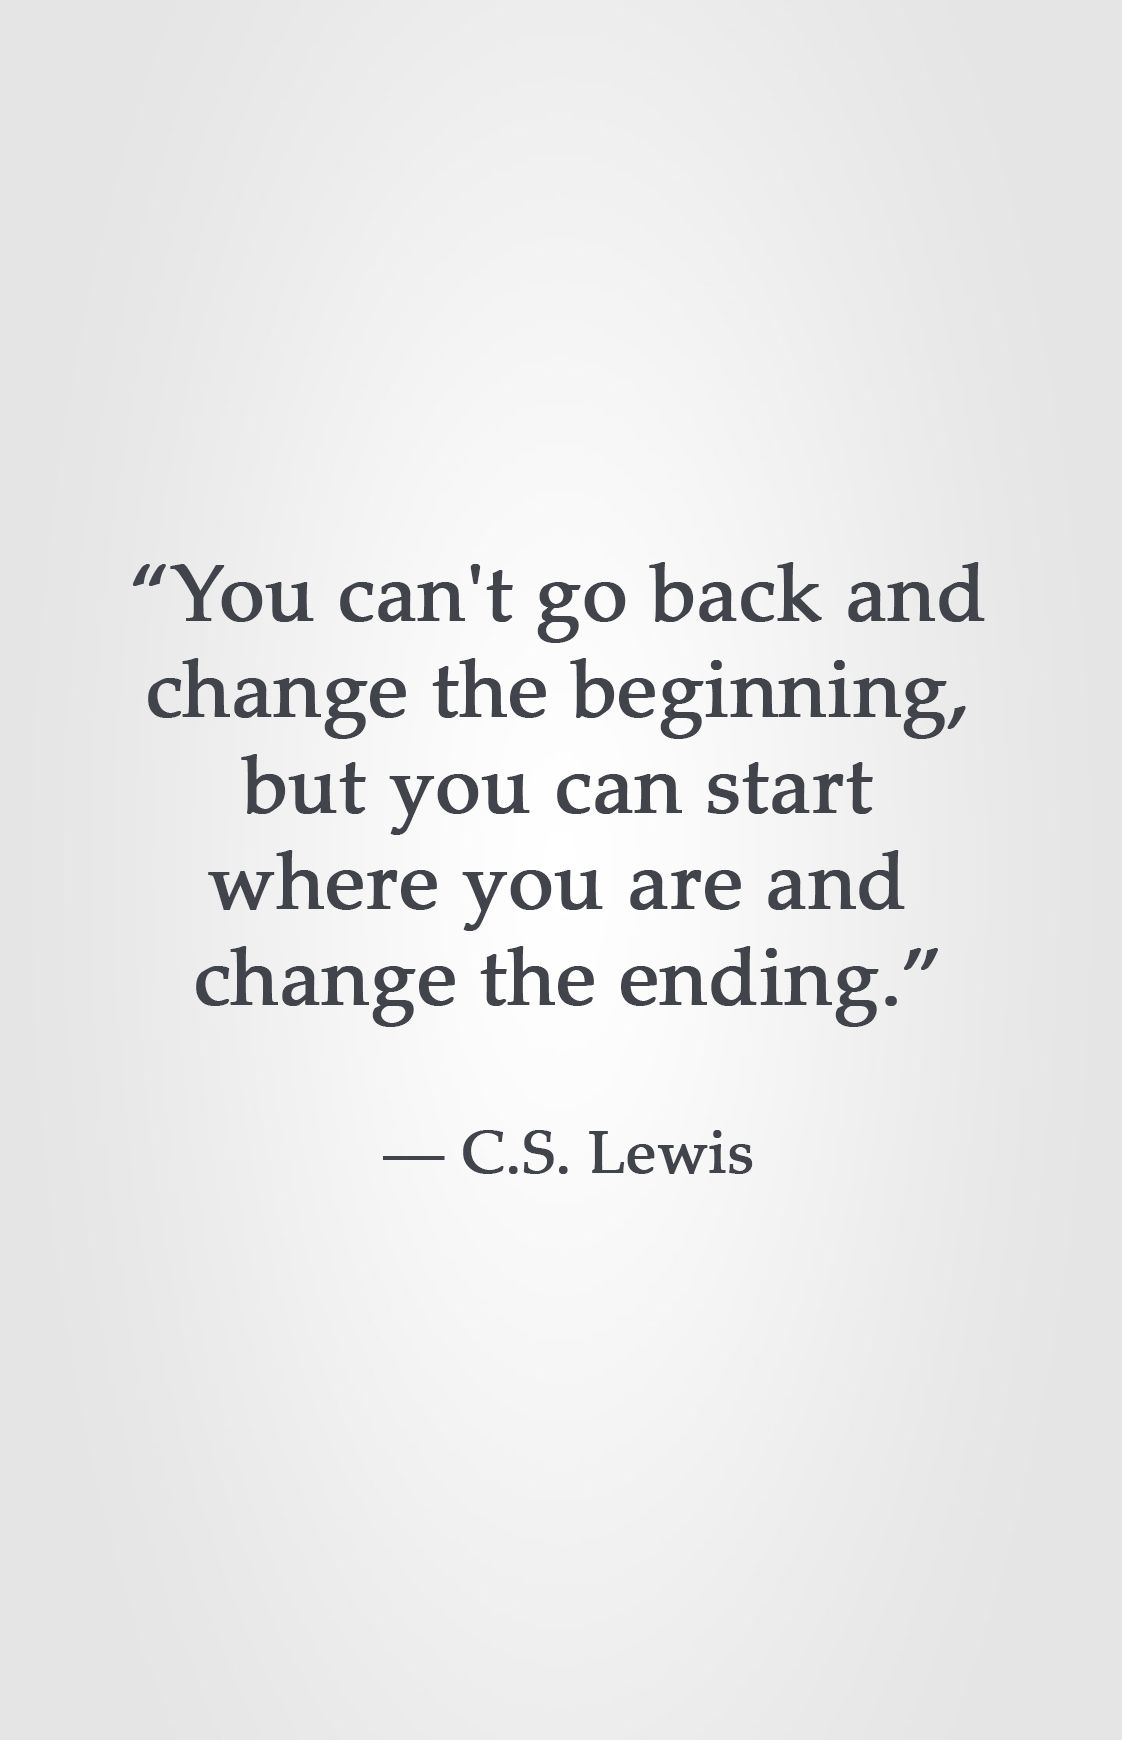 Quotes About Change You Can't Go Back And Change The Beginning But You Can Start Where